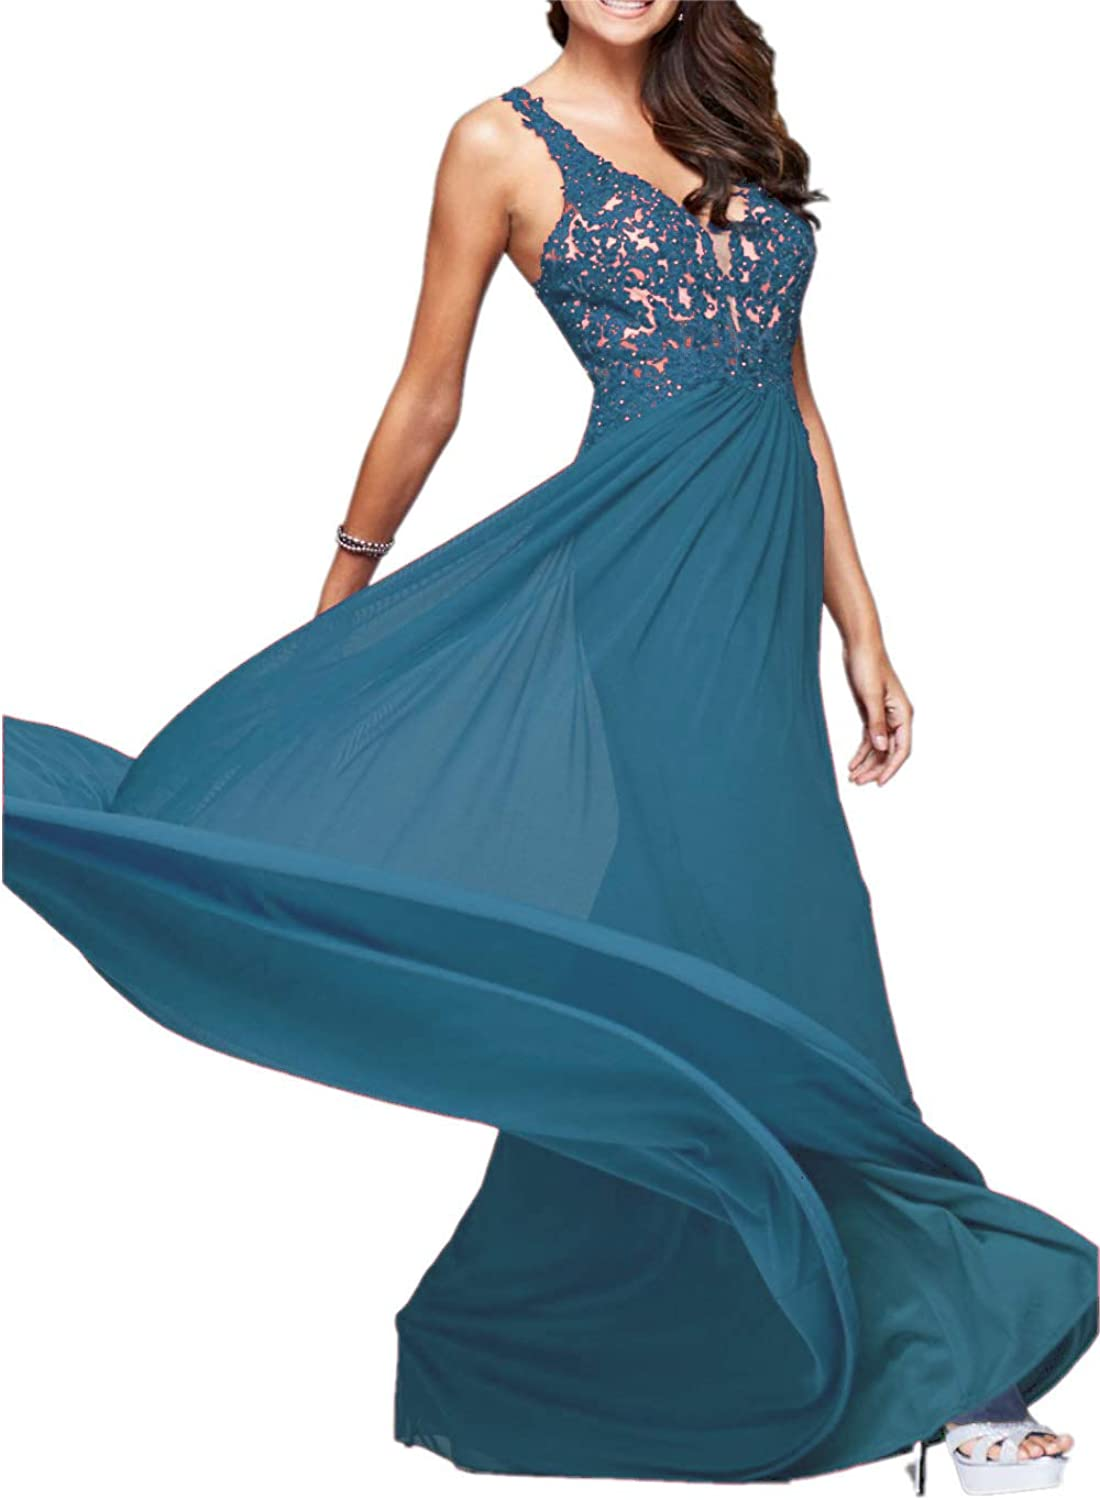 Sweet Bridal Women's Lace Appliques VBodice Prom Dress Long Evening Gowns